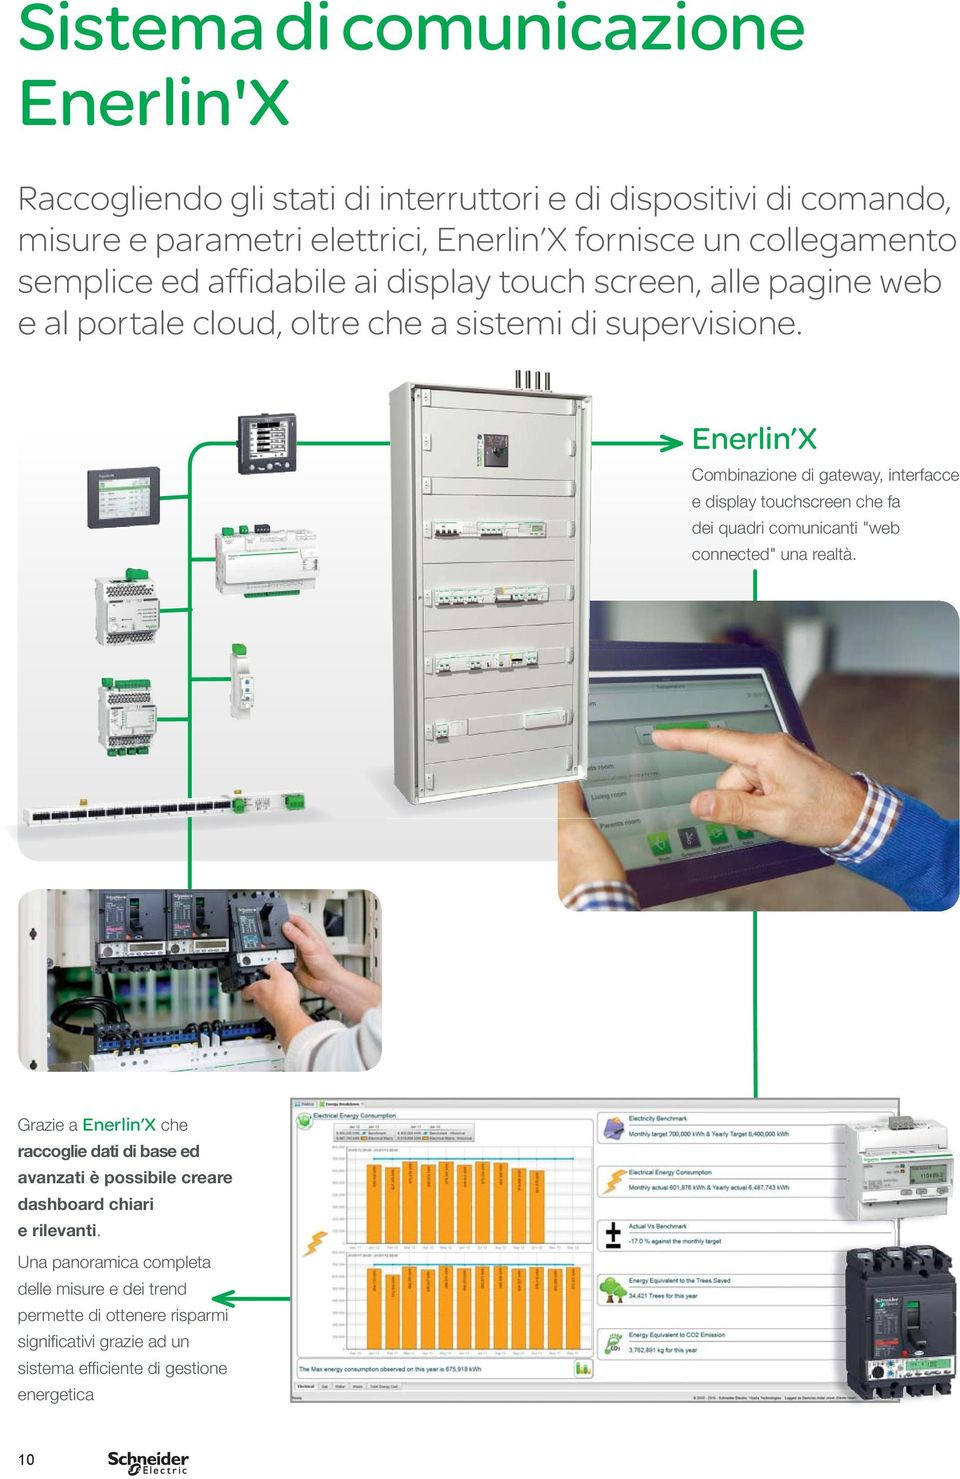 "Enerlin X Combinazione di gateway, interfacce e display touchscreen che fa dei quadri comunicanti ""web connected"" una realtà."